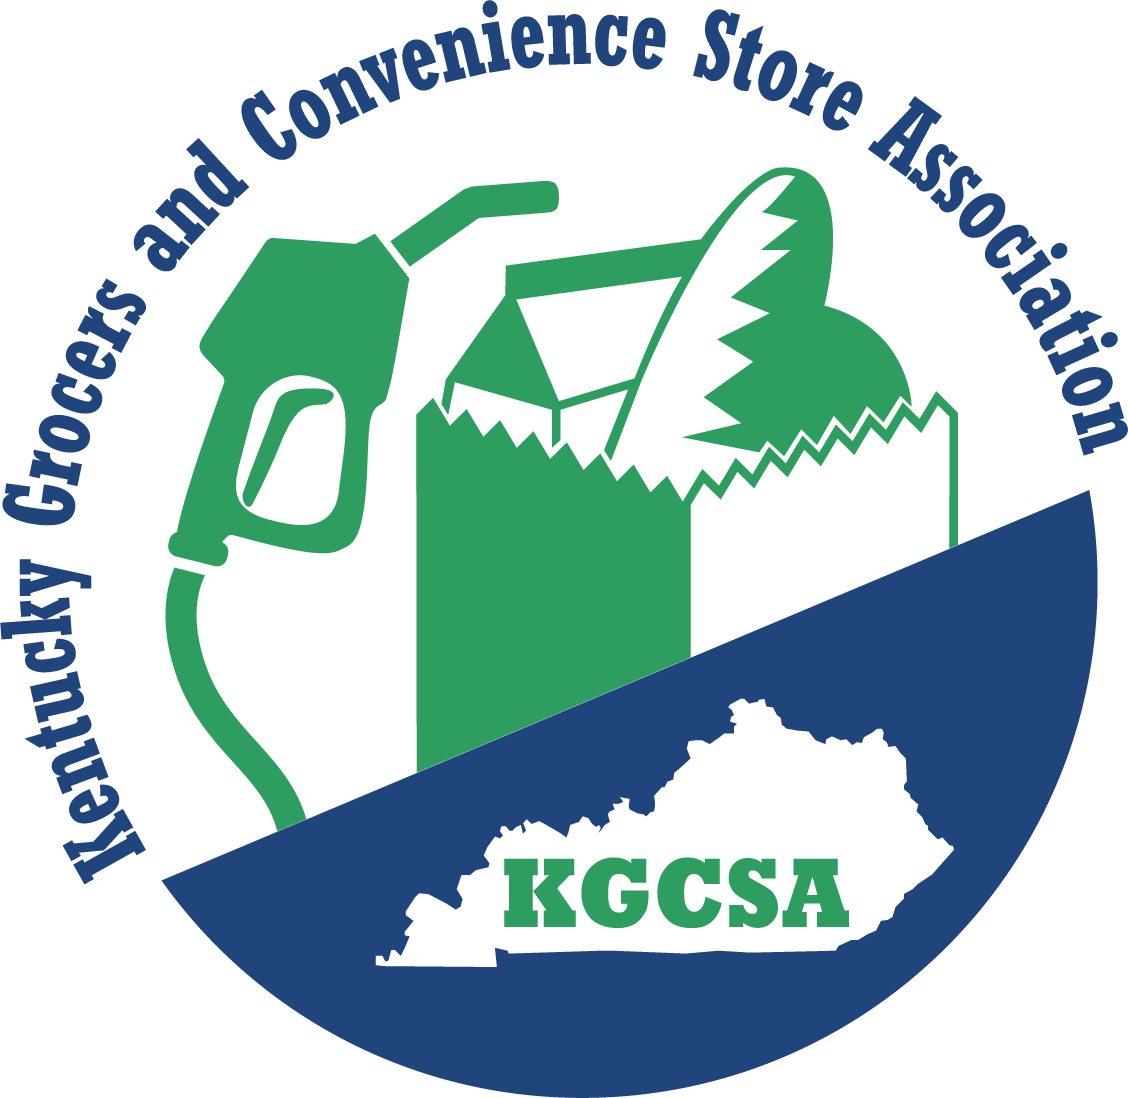 Kentucky Grocers & Convenience Store Association